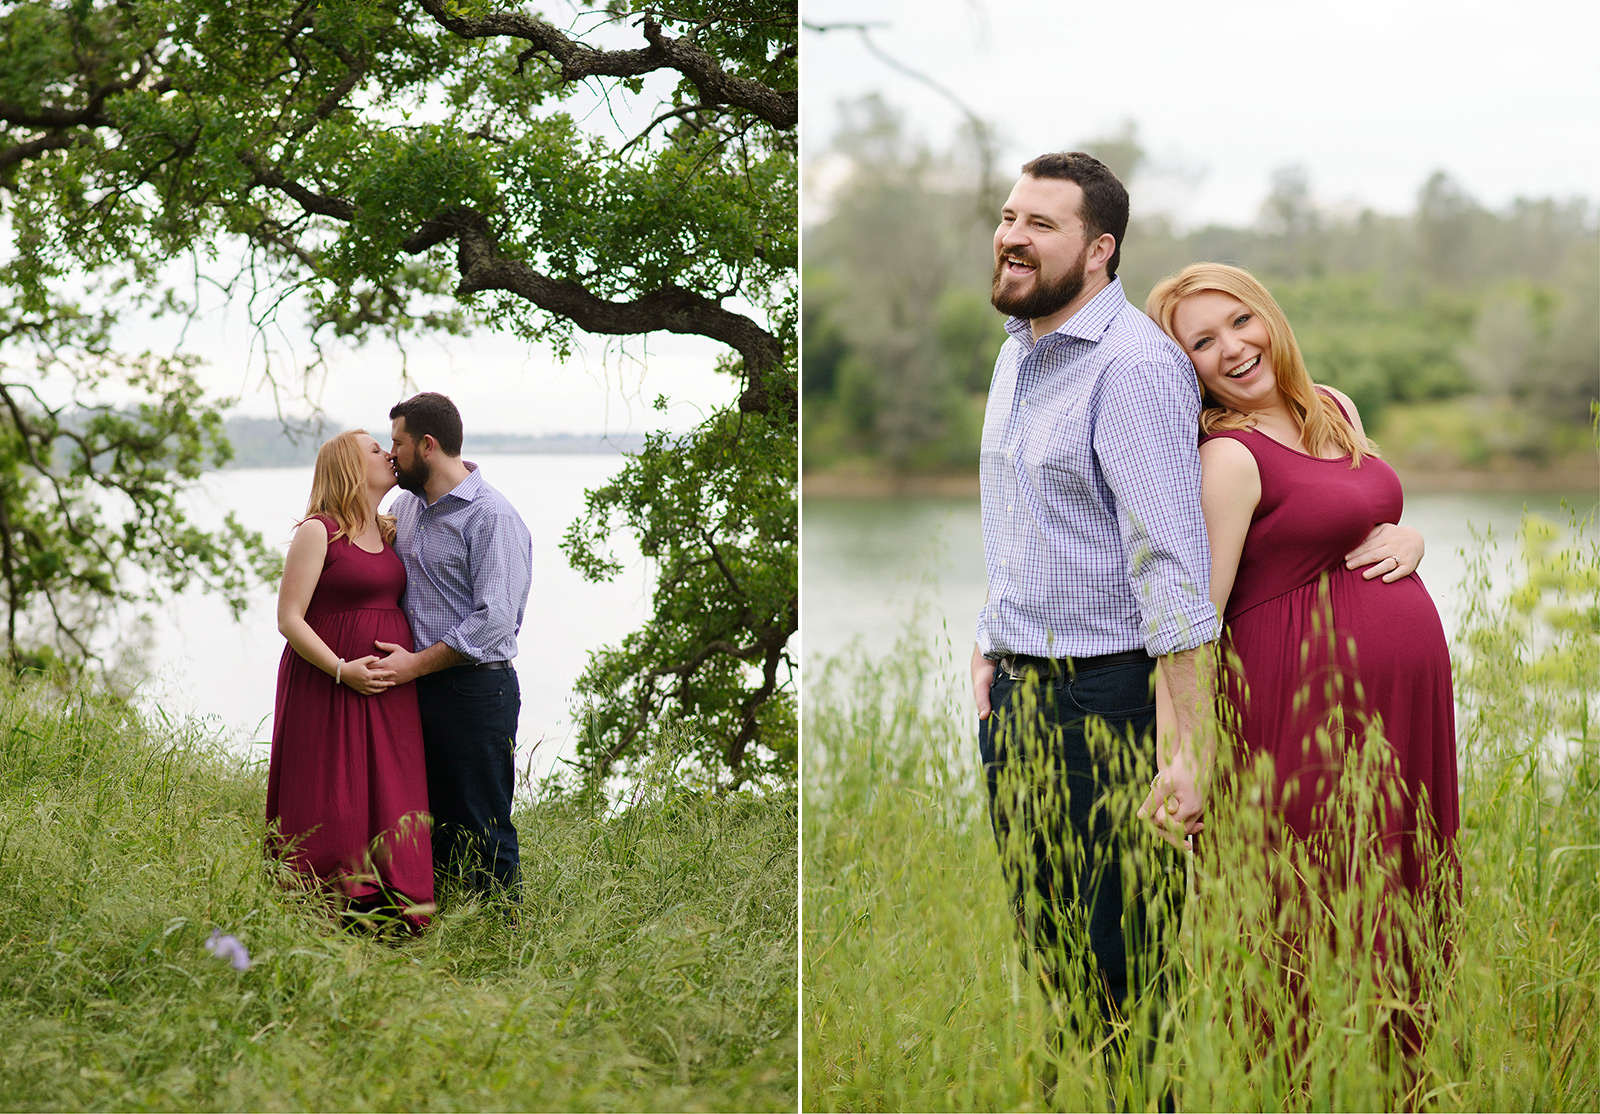 Pregnant couple smiling in folsom field of tall grass